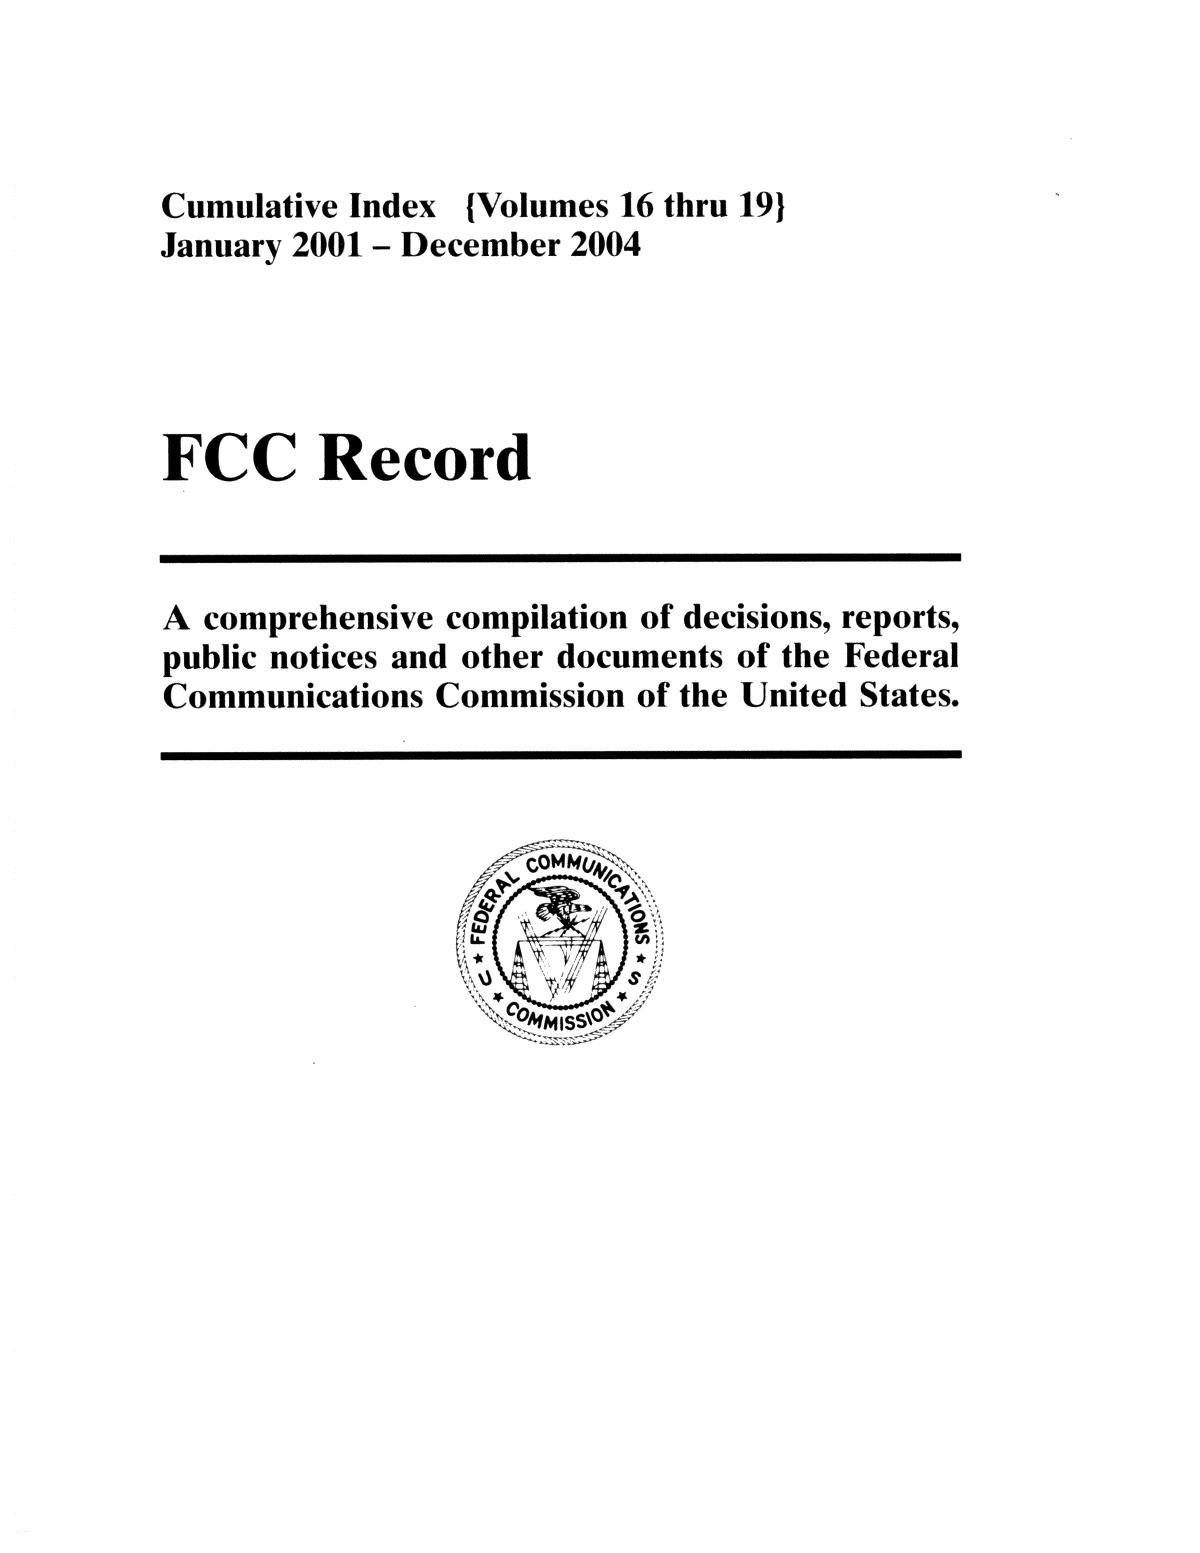 FCC Record, Cumulative Index, Volumes 16-19                                                                                                      Front Cover